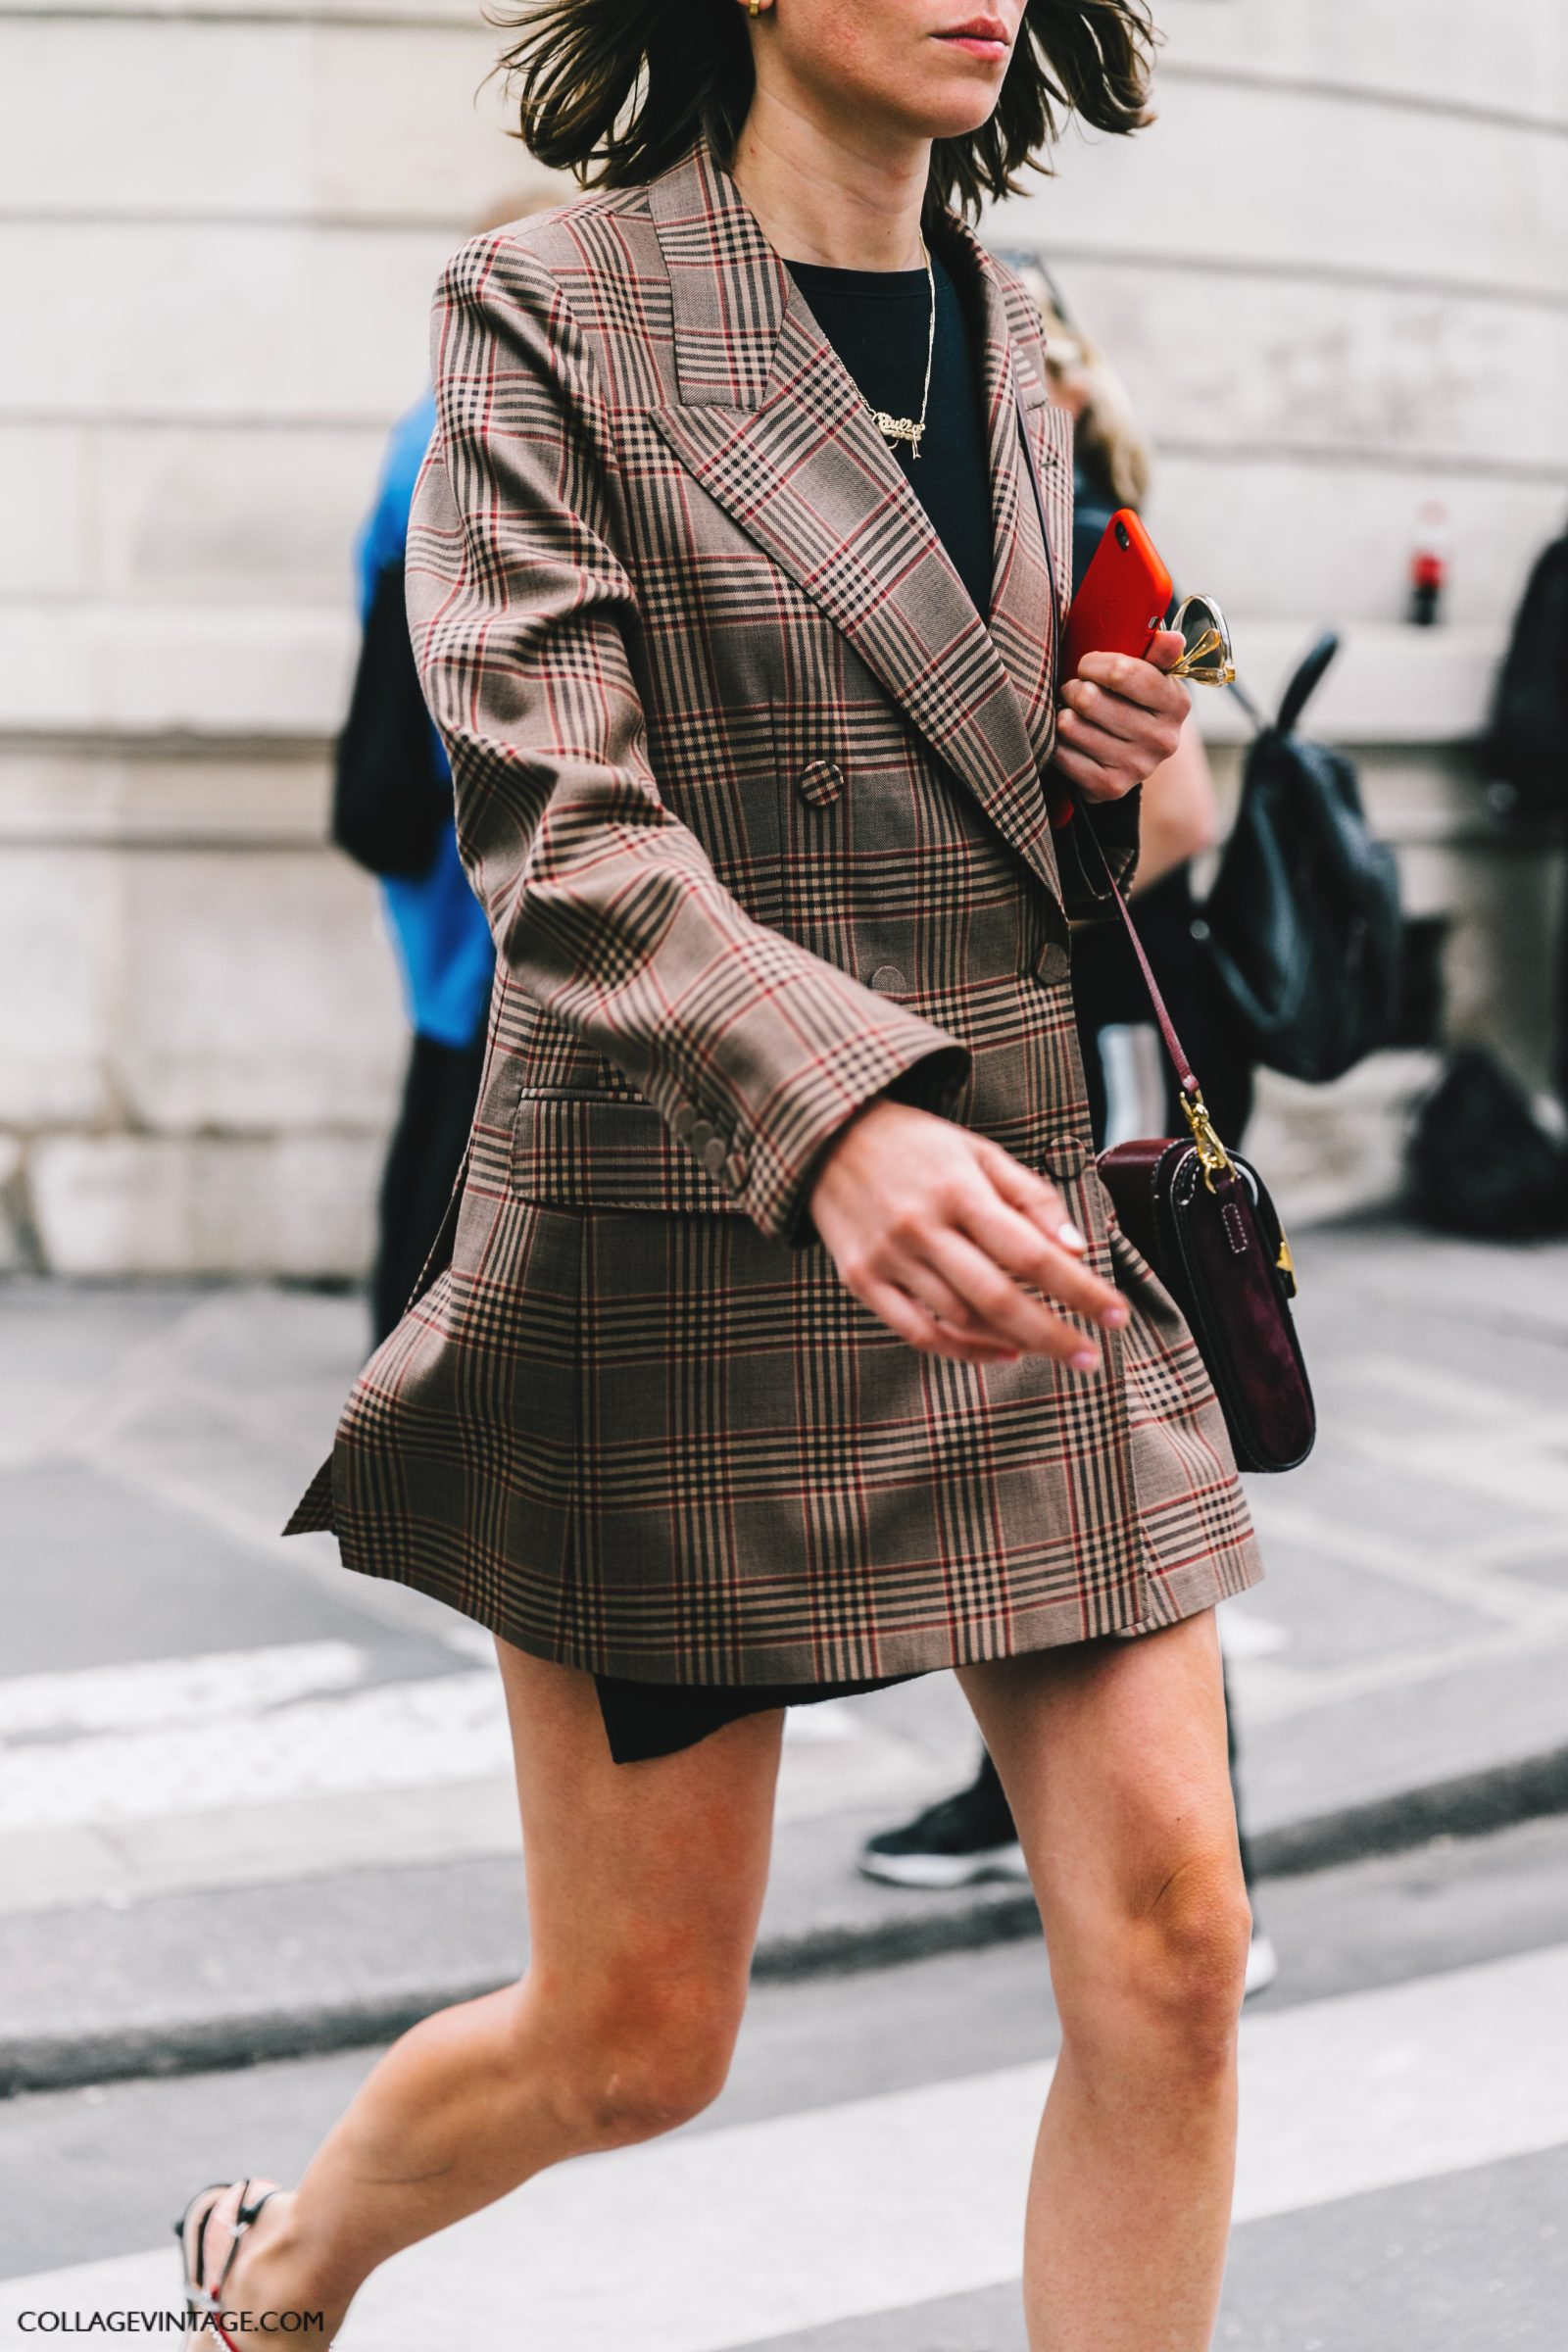 pfw-paris_fashion_week_ss17-street_style-outfits-collage_vintage-valentino-balenciaga-celine-161